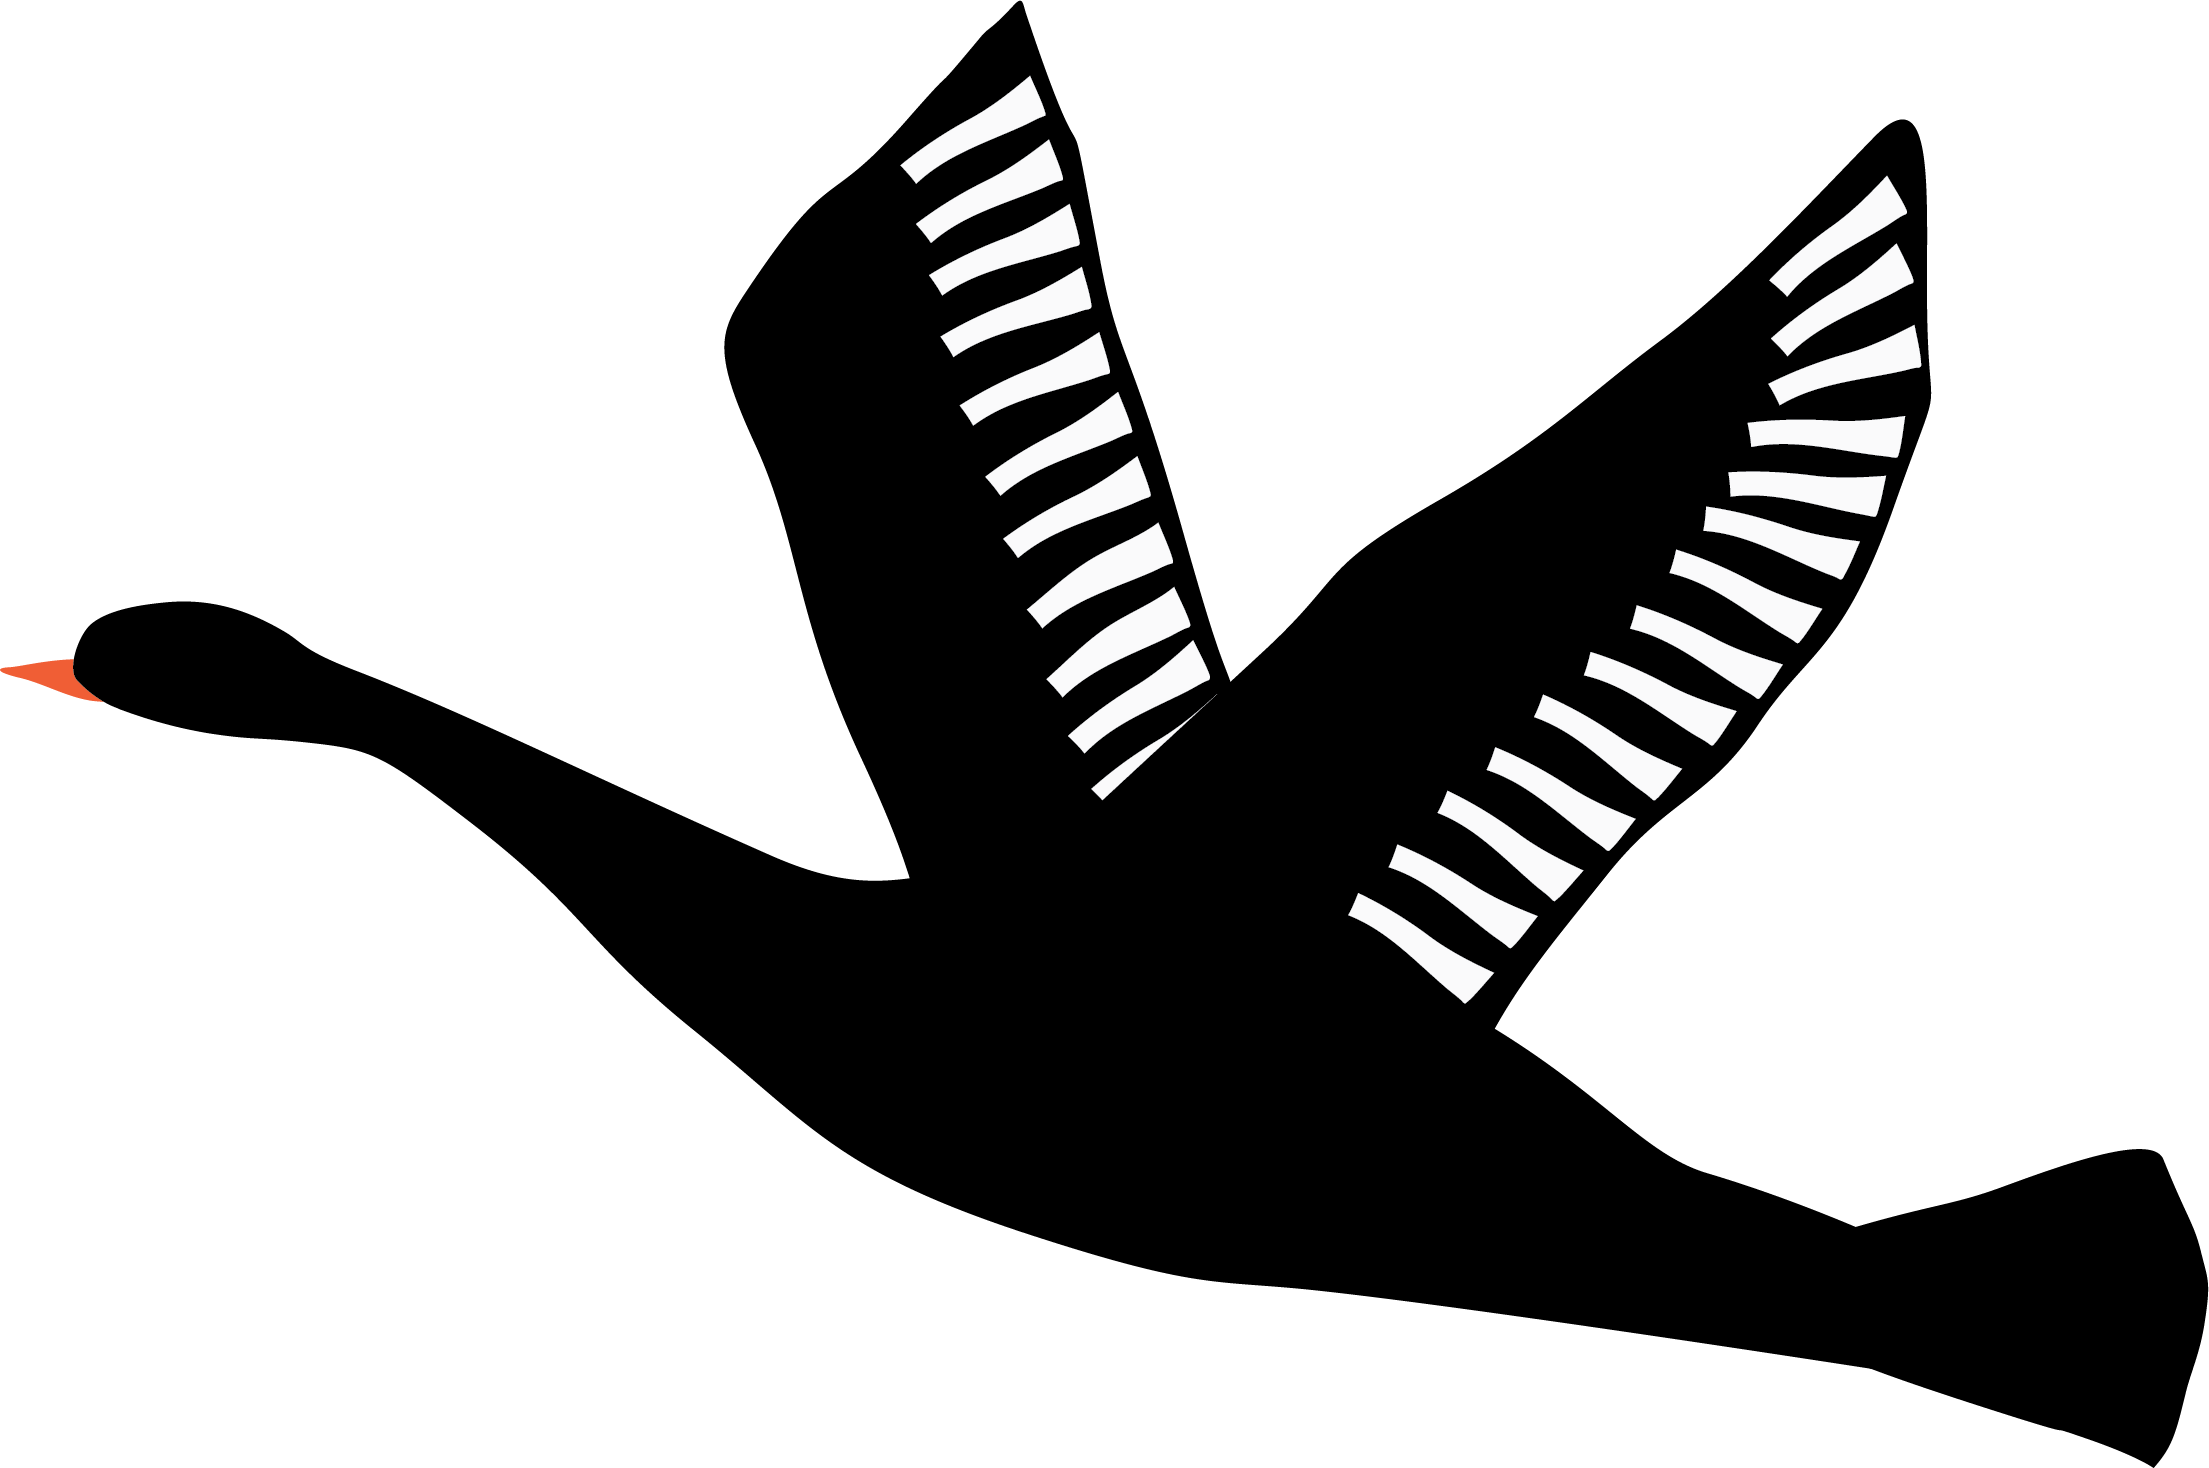 staked_logo.png